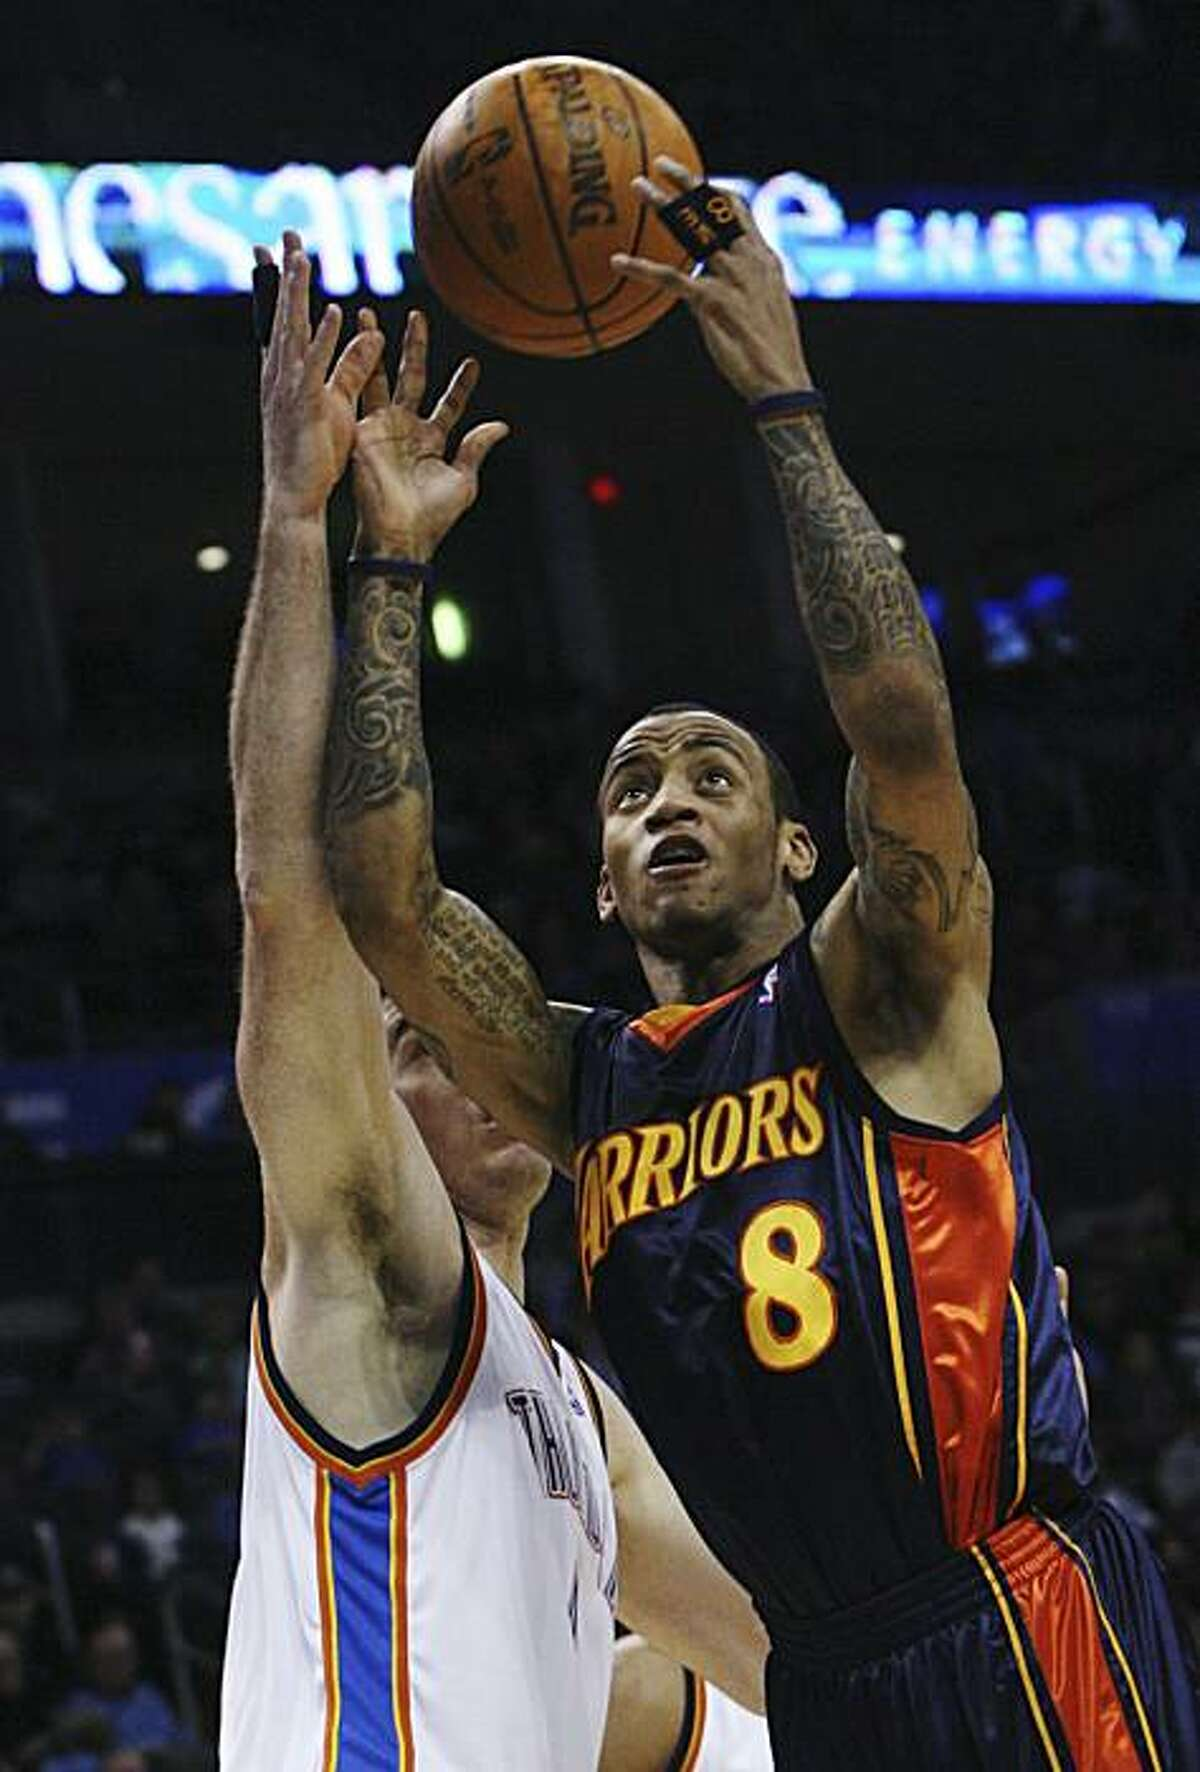 Golden State guard Monta Ellis, right, shoots in front of Oklahoma City Thunder forward Nick Collison, left, in the second quarter of an NBA basketball game in Oklahoma City, Sunday, Jan. 31, 2010. Ellis had 25 points for Golden State, but Oklahoma City won 112-104.